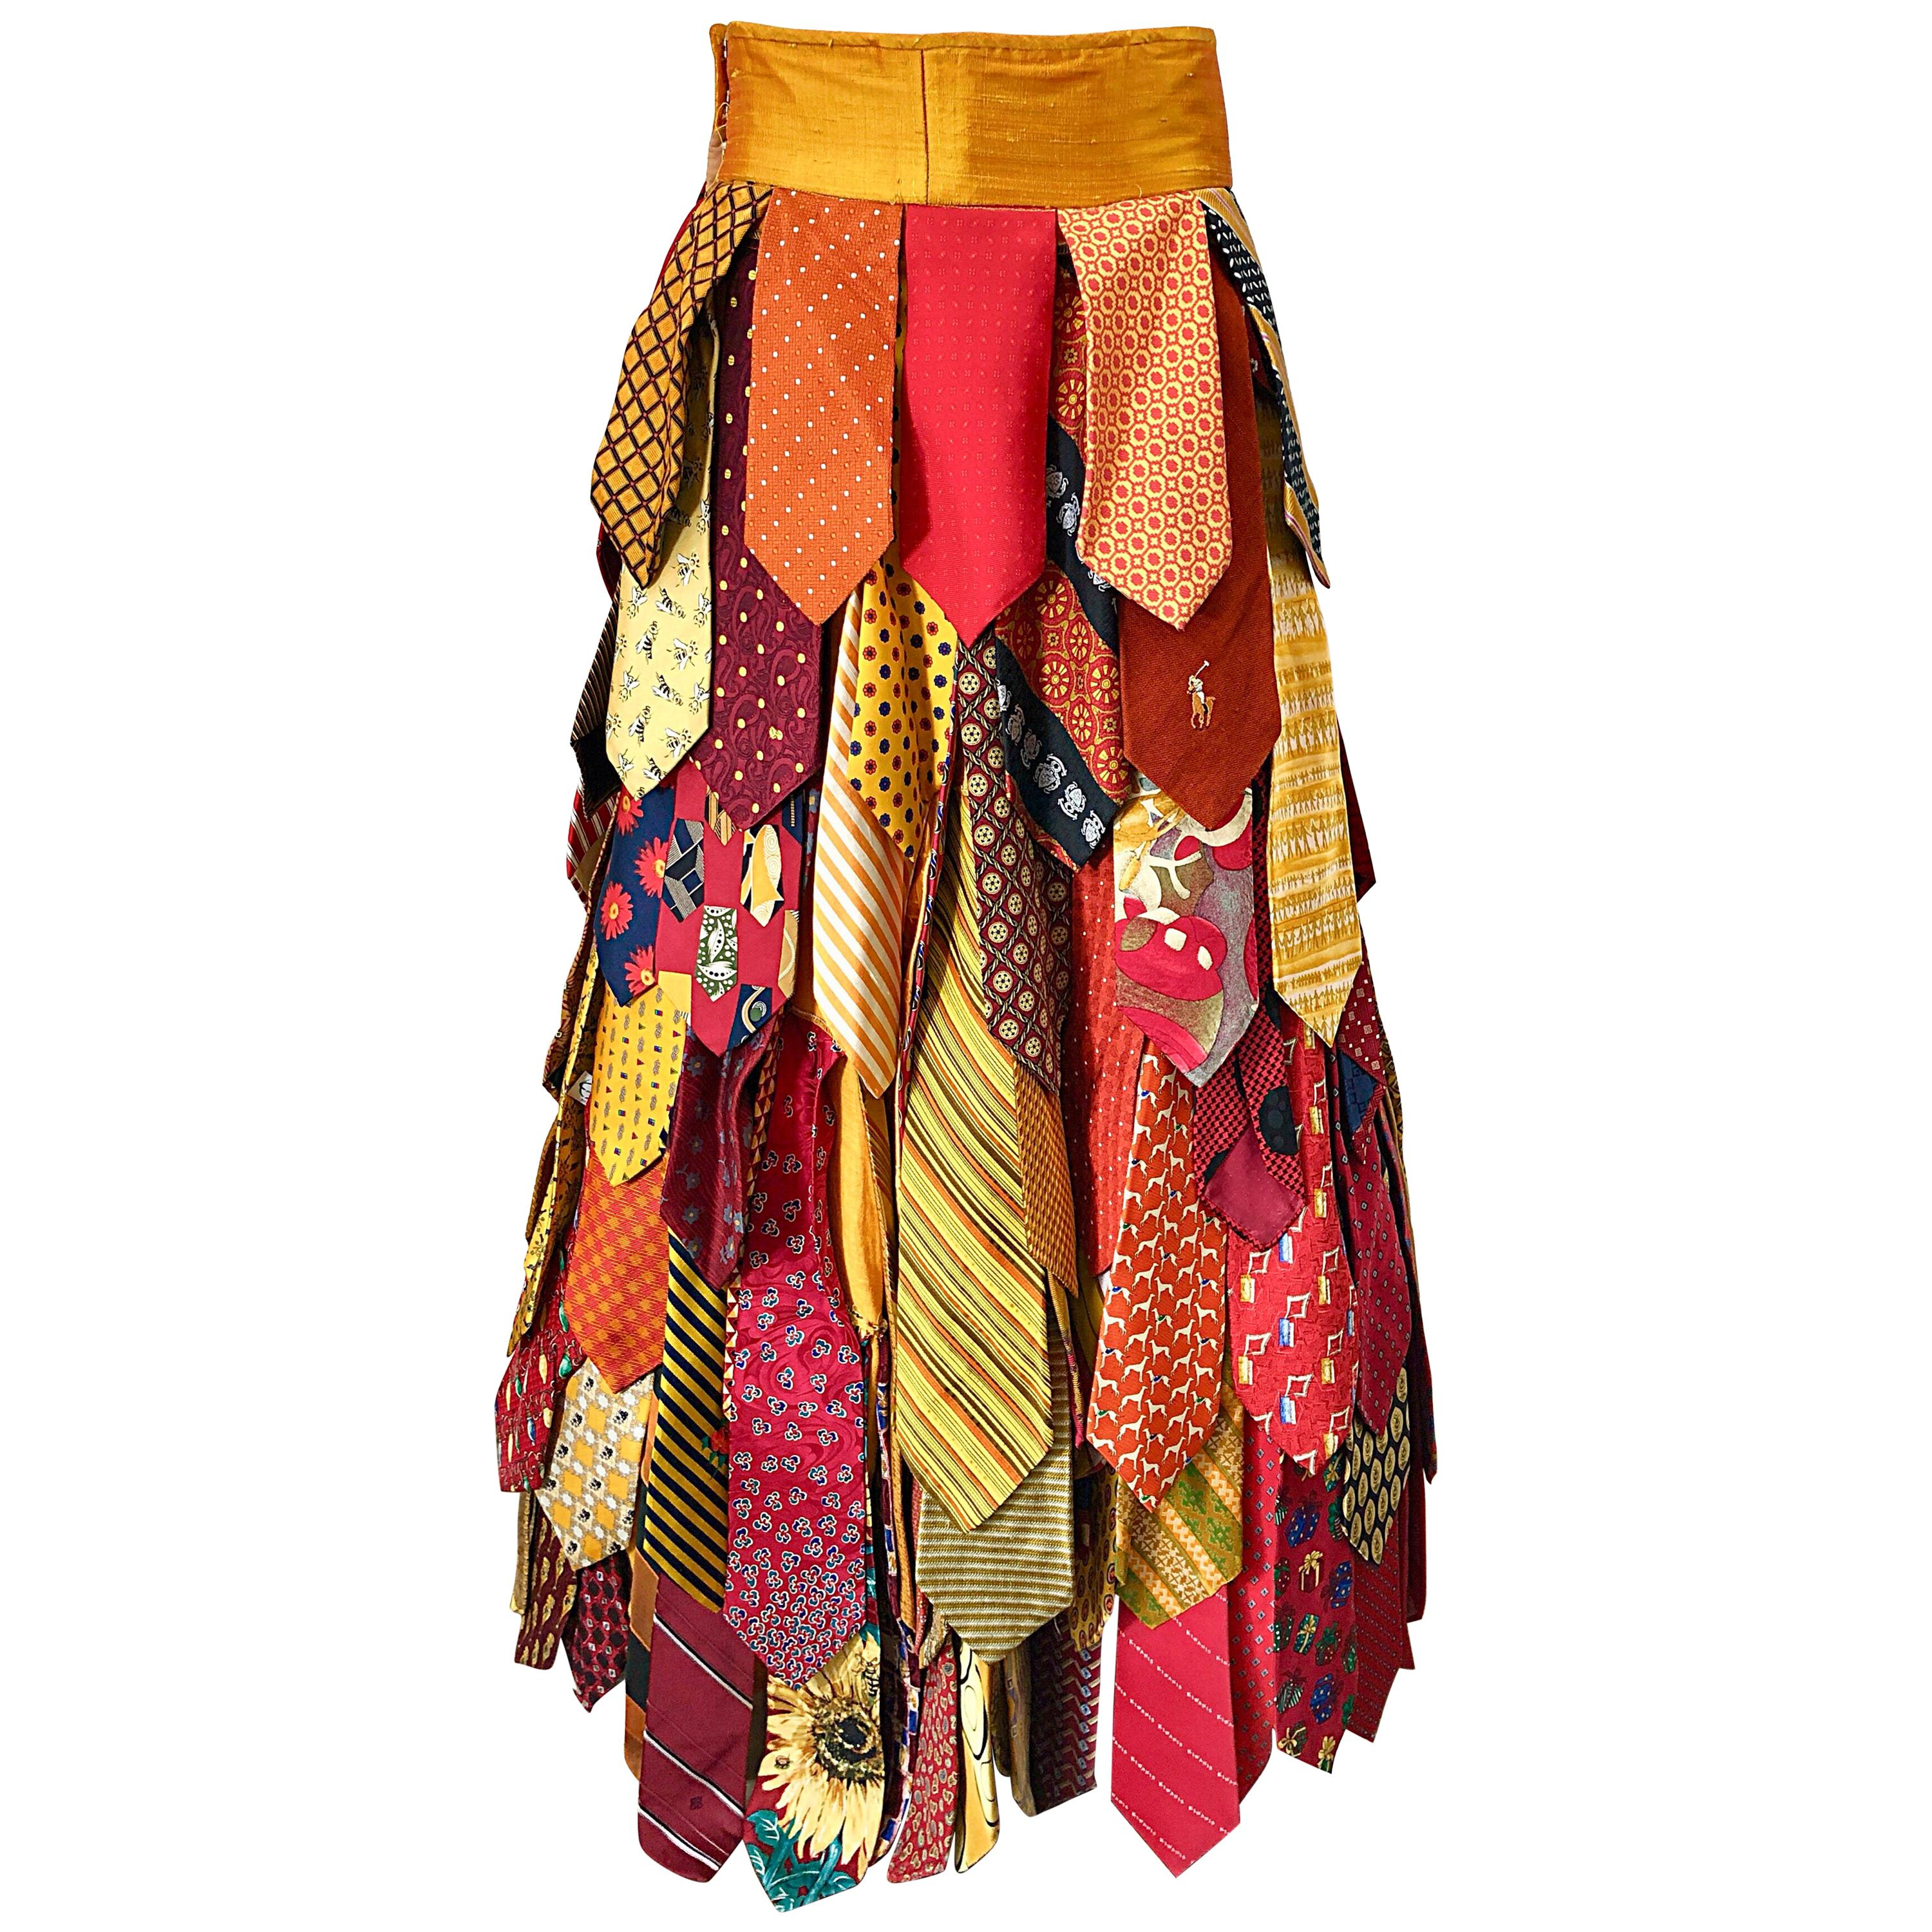 611b8932a7a6 Beautiful Vintage Watercolor Floral Yellow Silk Taffeta Full Length Bubble  Skirt For Sale at 1stdibs